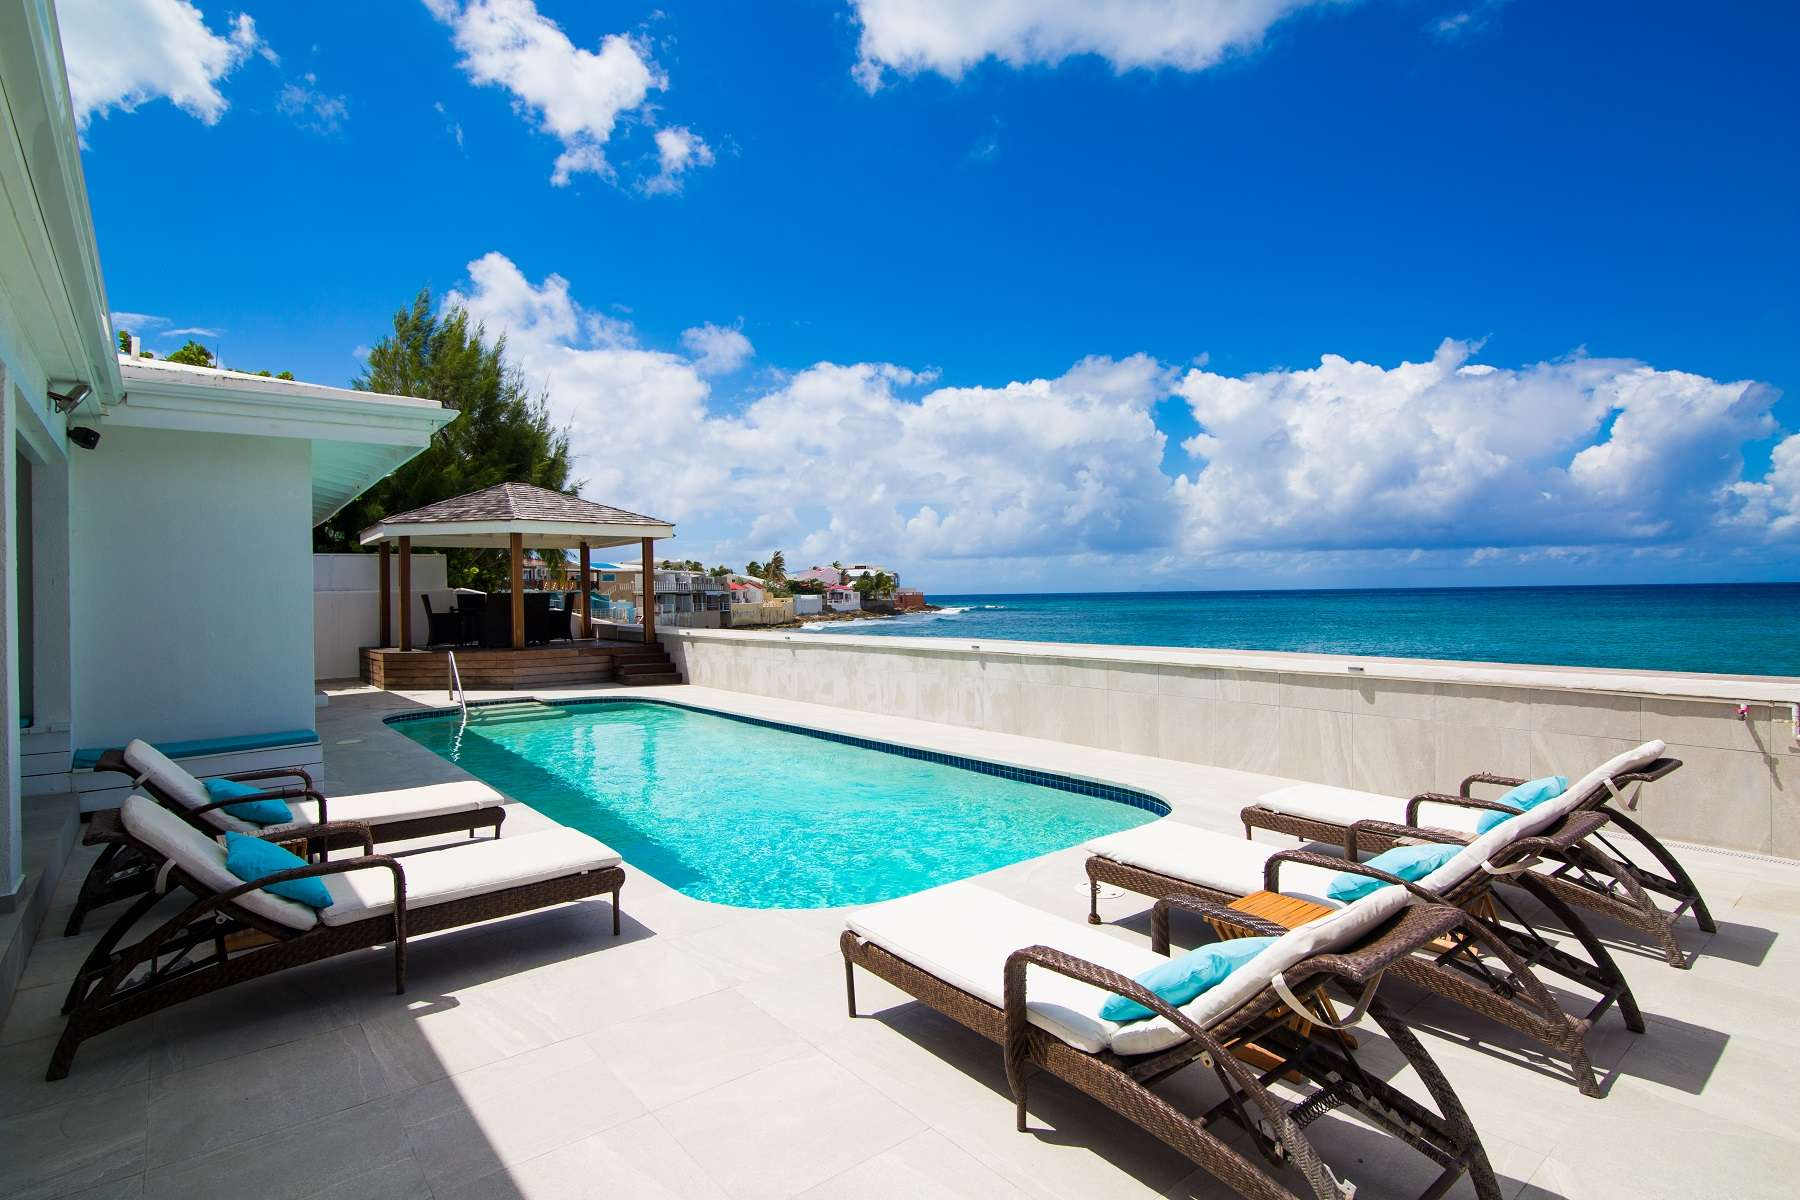 Luxury villa rentals caribbean - St martin - Sint maarten - Beacon hill - Moonlight Beach House - Image 1/20